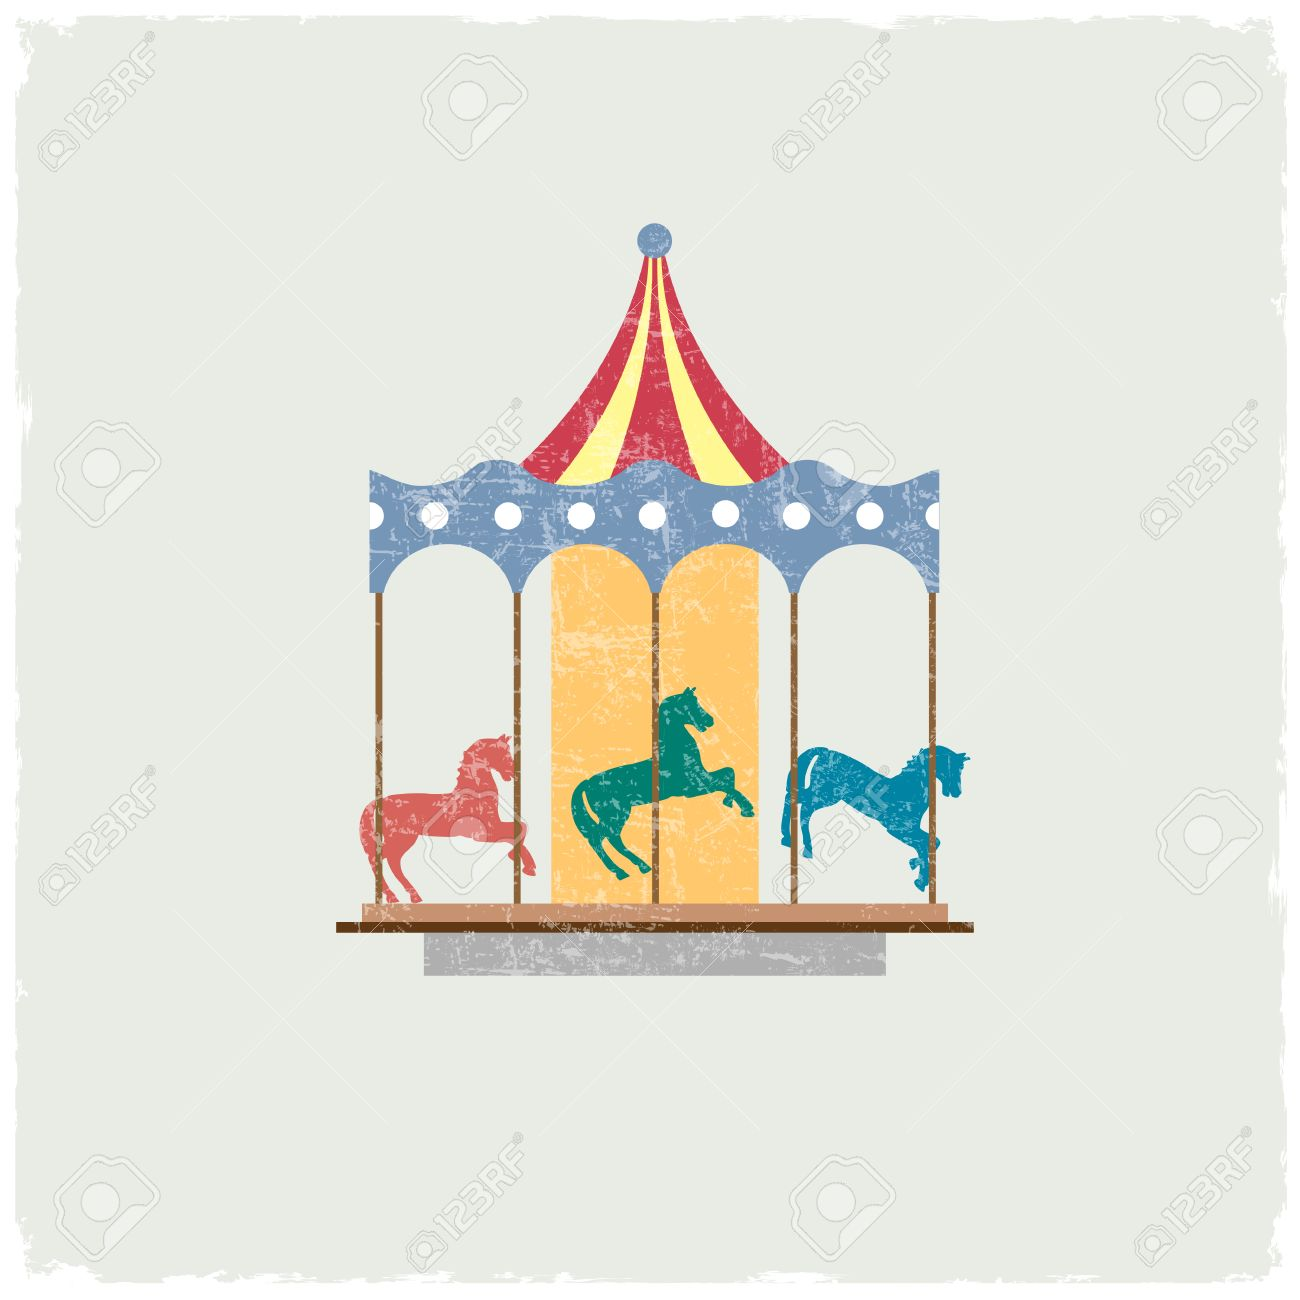 Vintage merry-go-round with horses. Stock Vector - 23660107